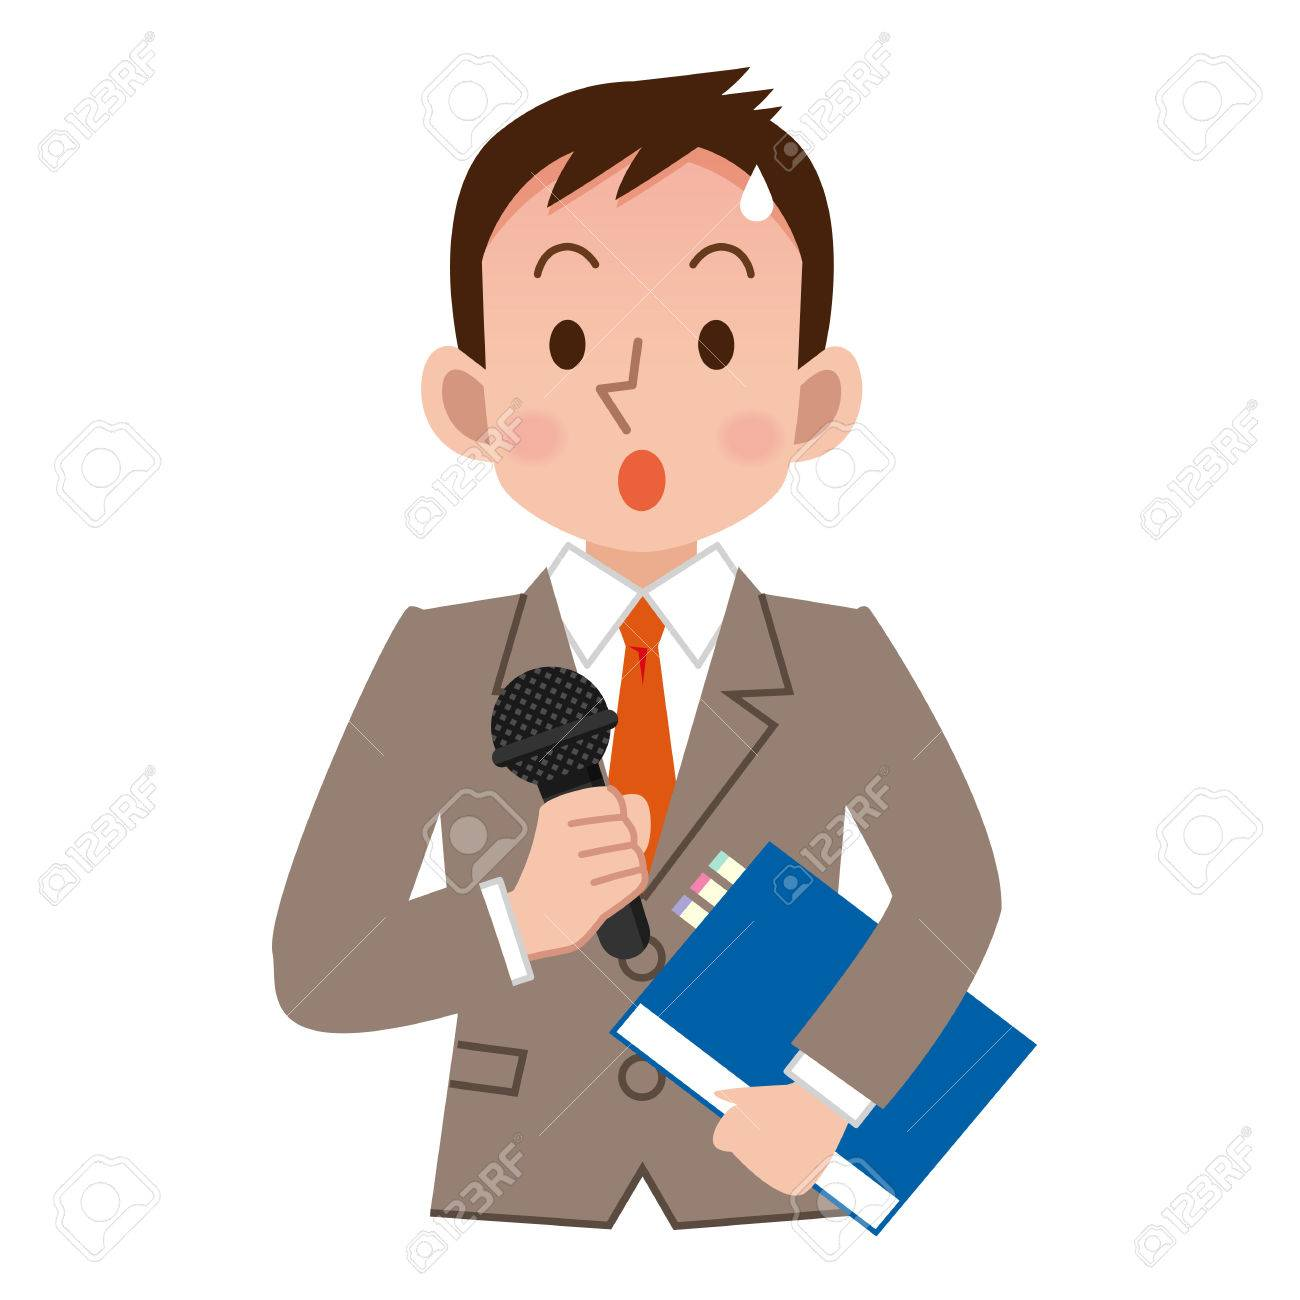 Businessman to be tension in the speech - 63208359